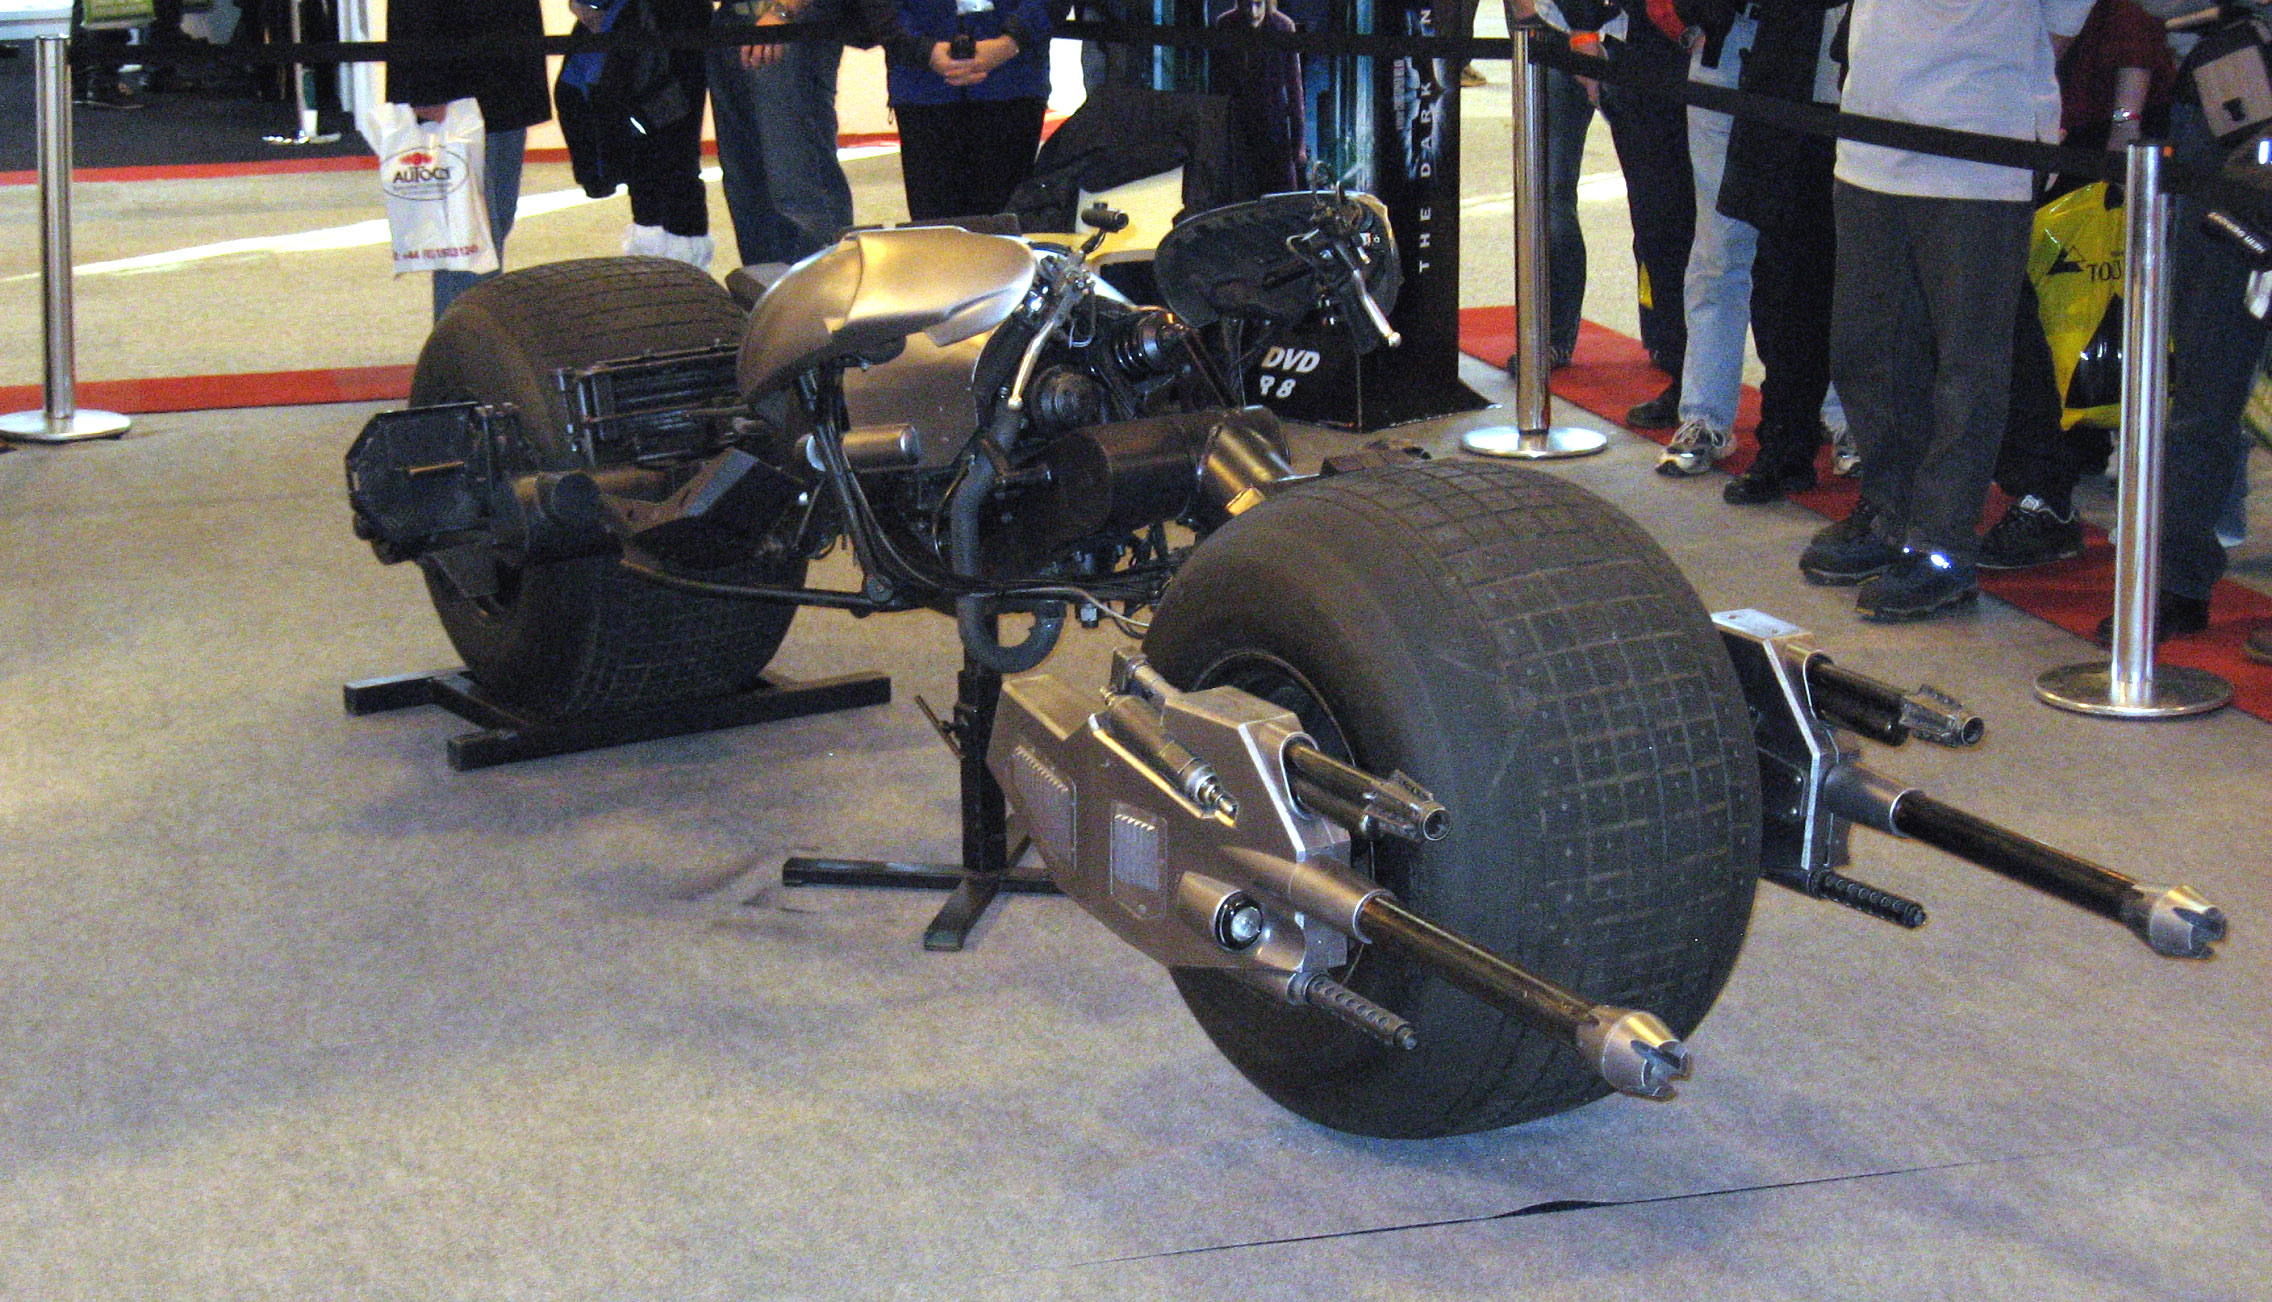 Batman Concept 2009 images #146521